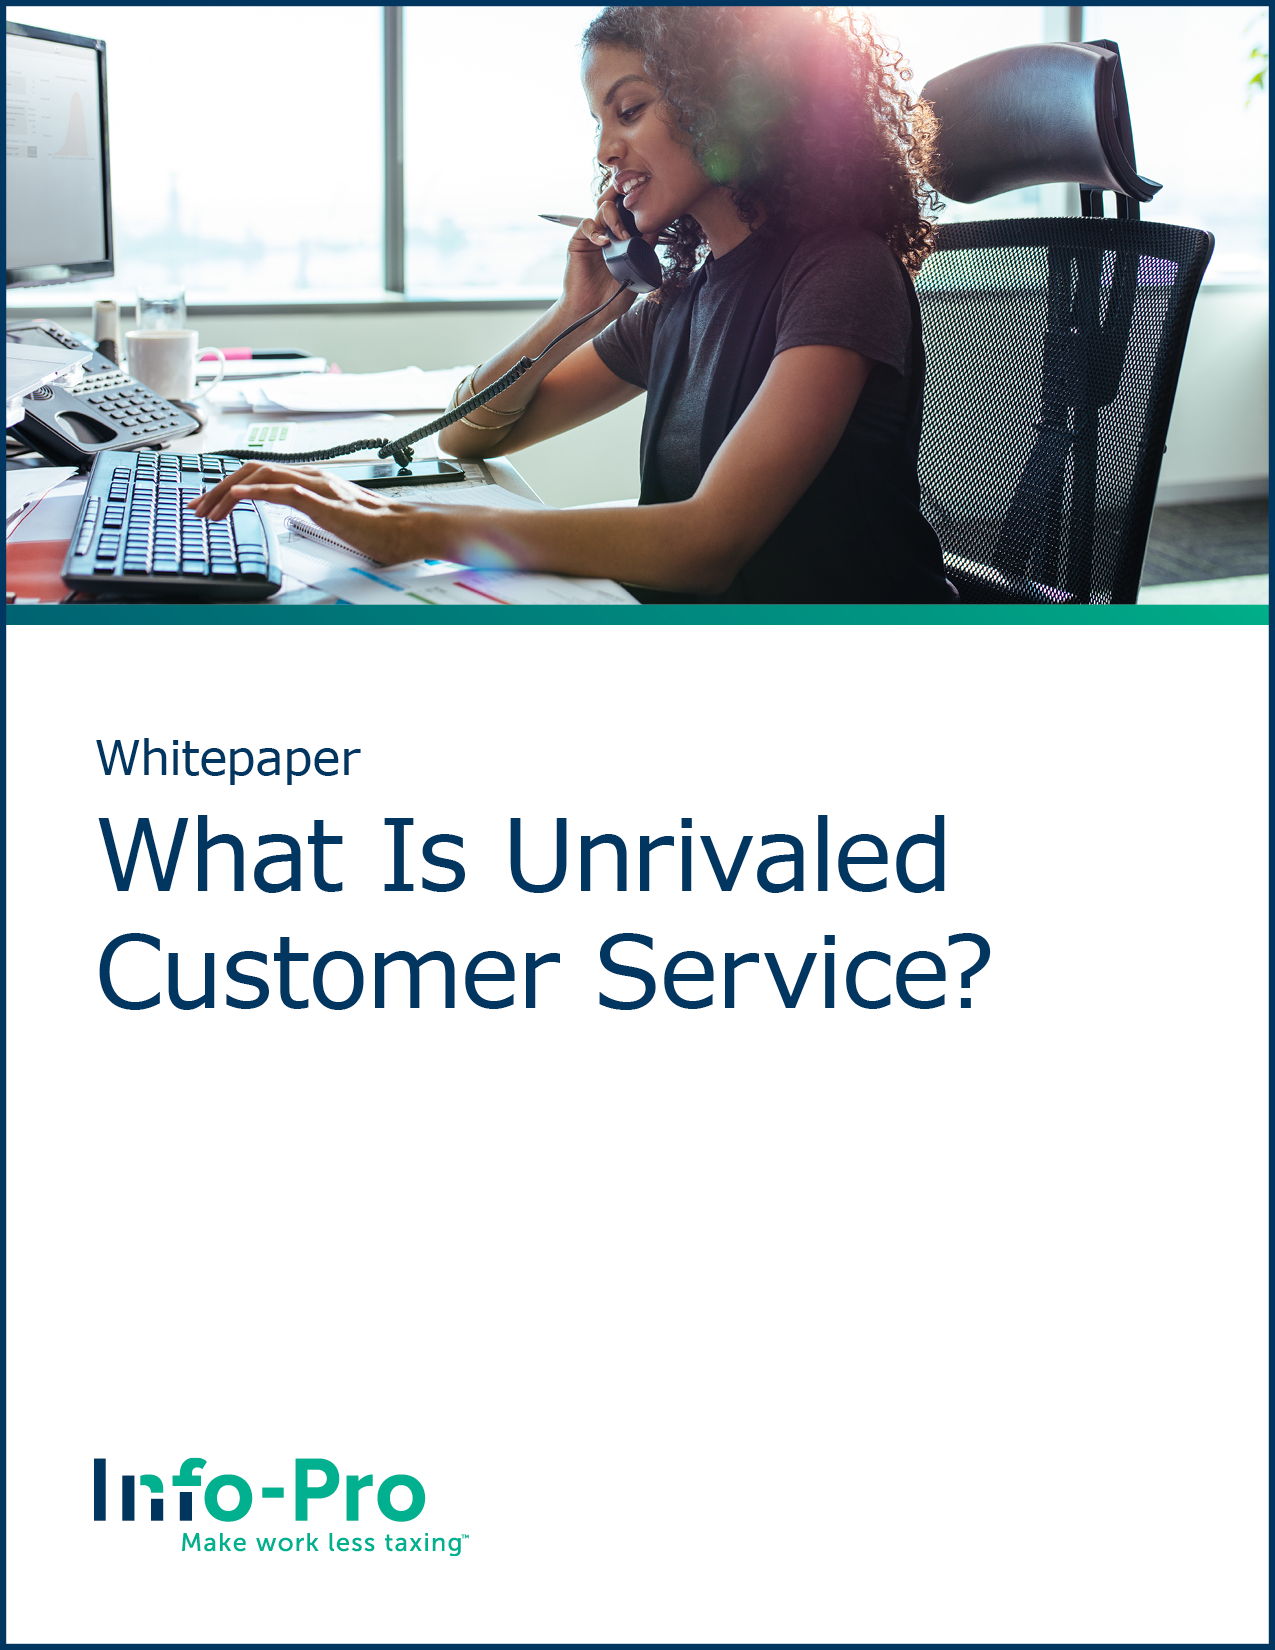 What is Unrivaled Customer Service?